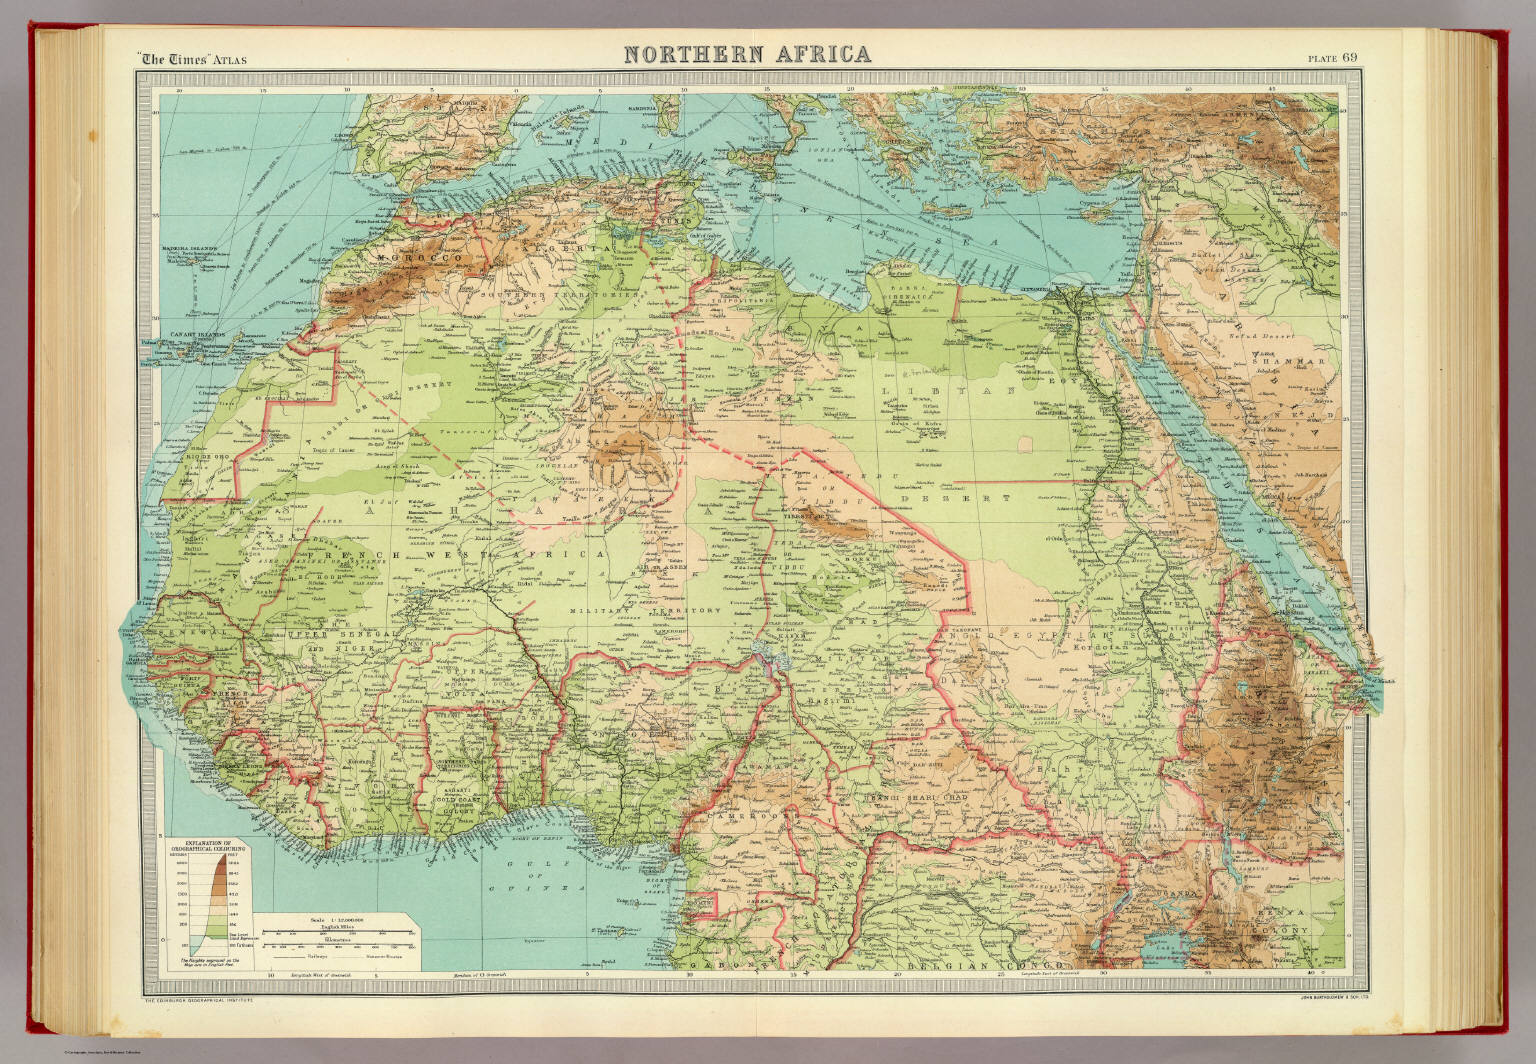 Northern Africa. - David Rumsey Historical Map Collection